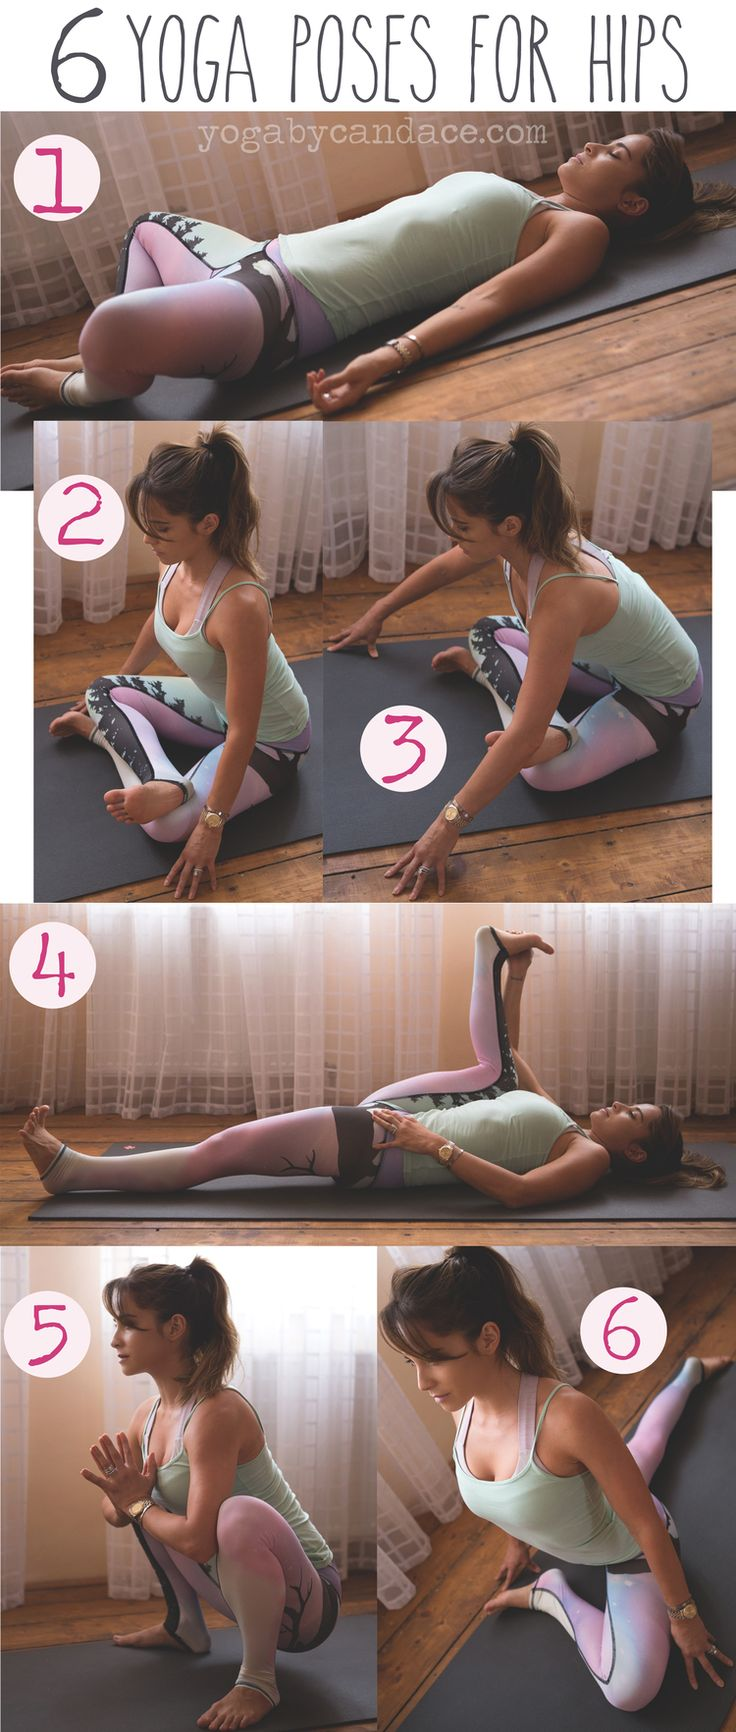 Pin now, practice later! 6 yoga poses for hips! Wearing: Teeki northern lights pants, tank. Using: Manduka mat